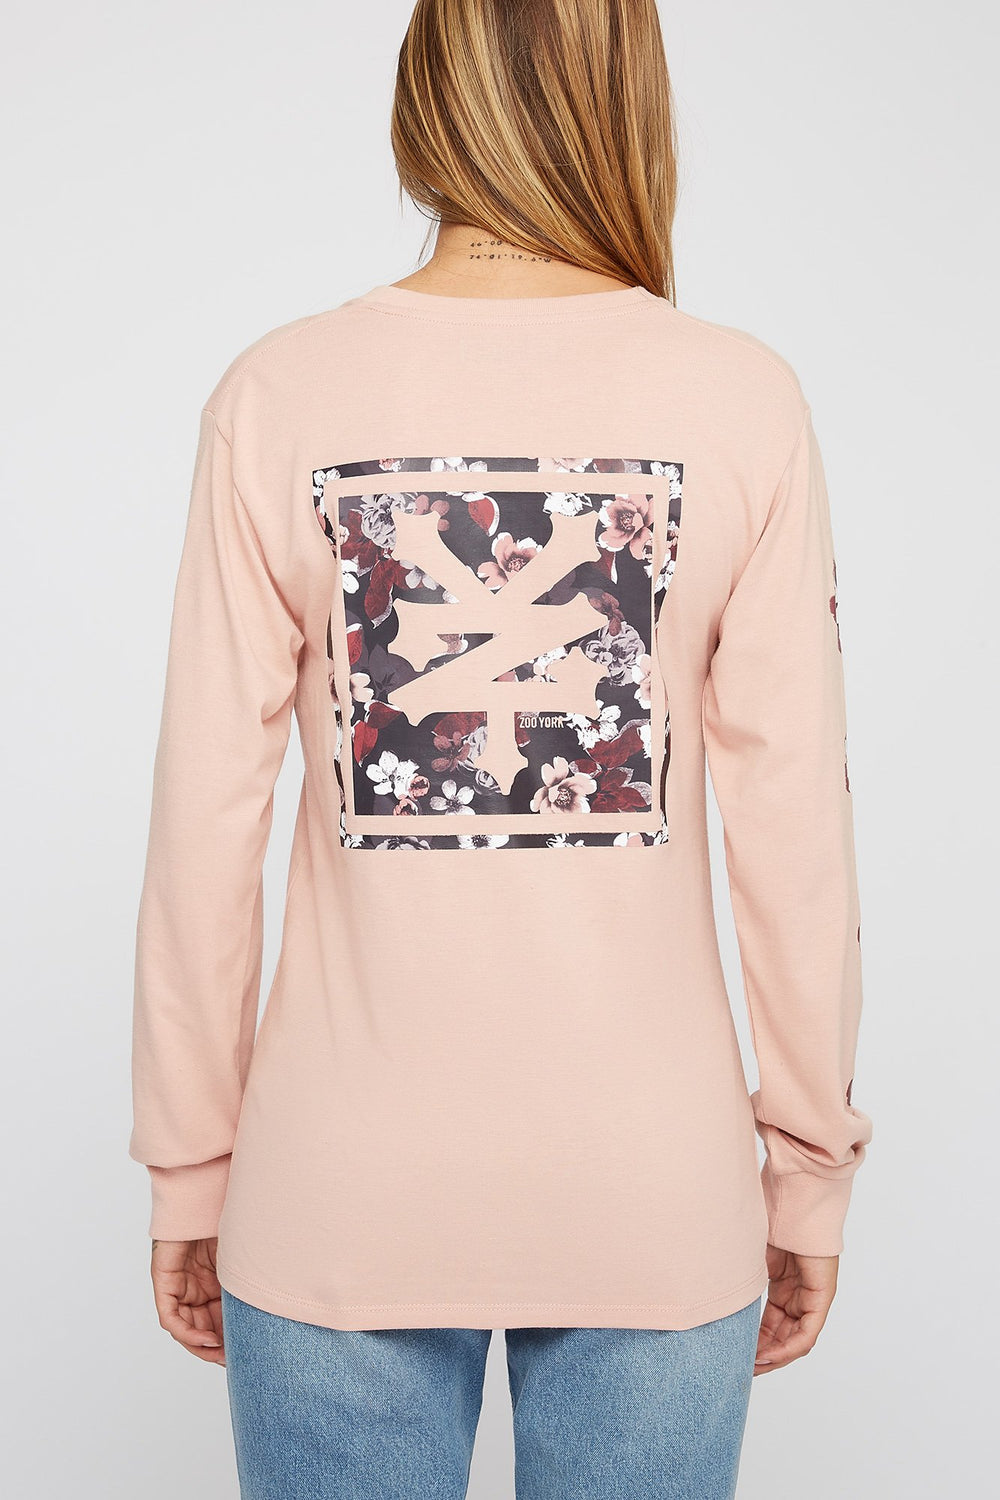 Zoo York Womens Floral Long Sleeve Shirt Dusty Rose